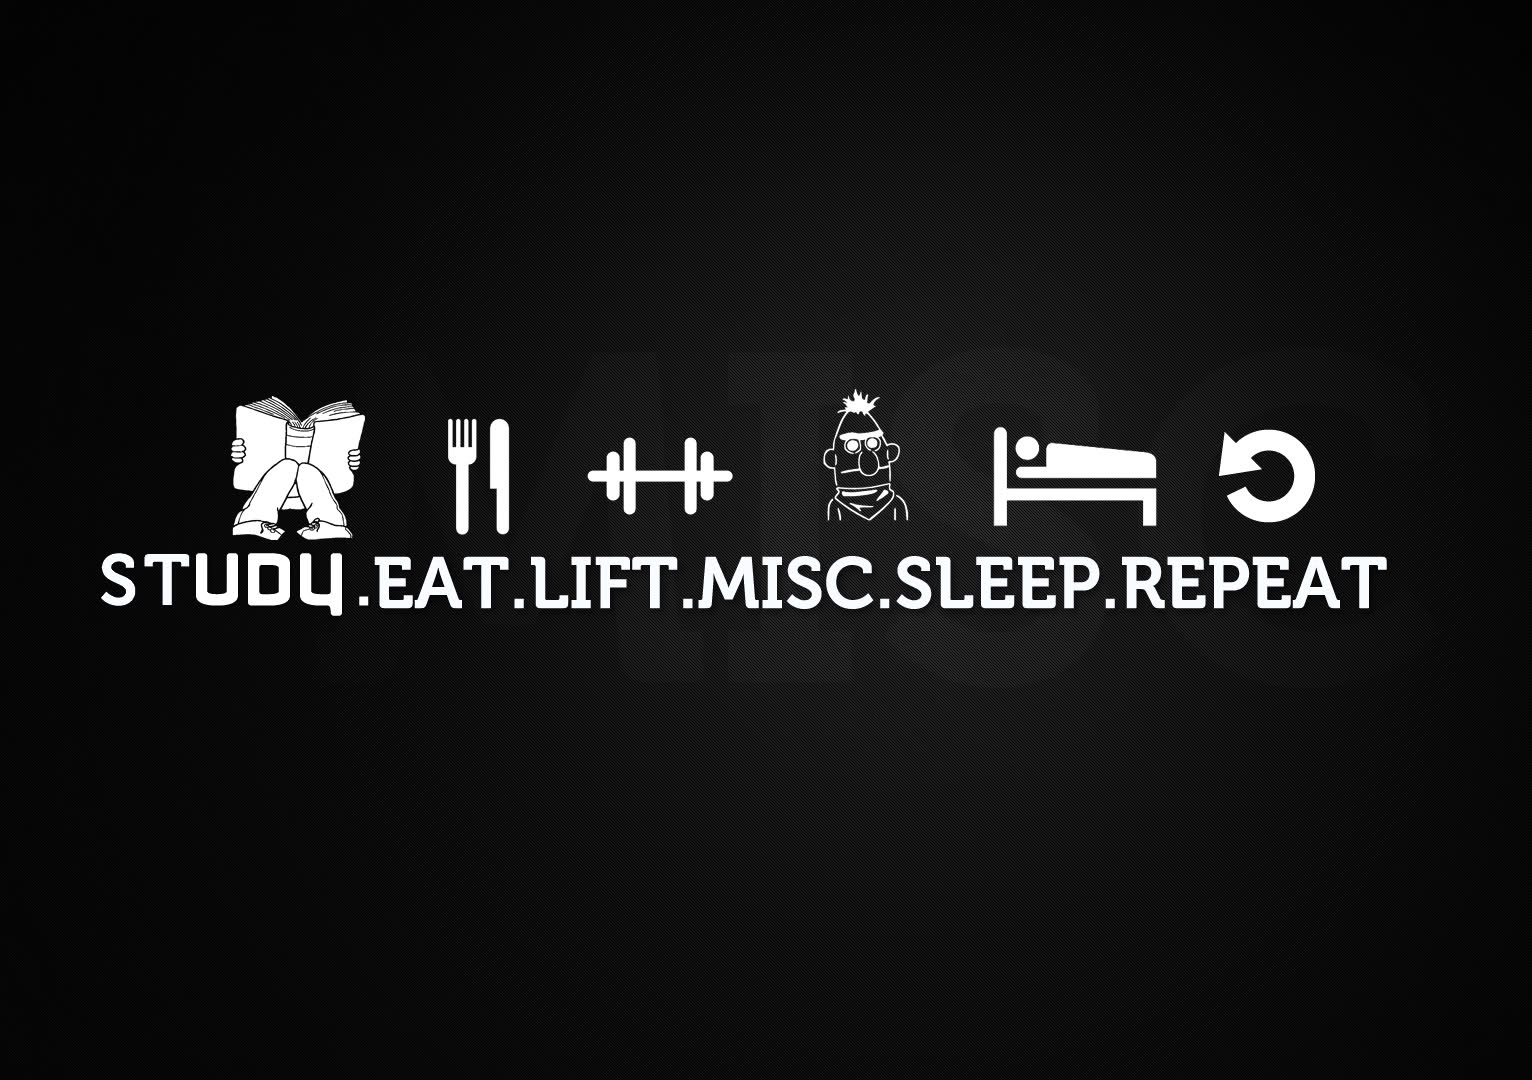 Beast Motivation Study eat lift misc sleep repeat 1532x1080